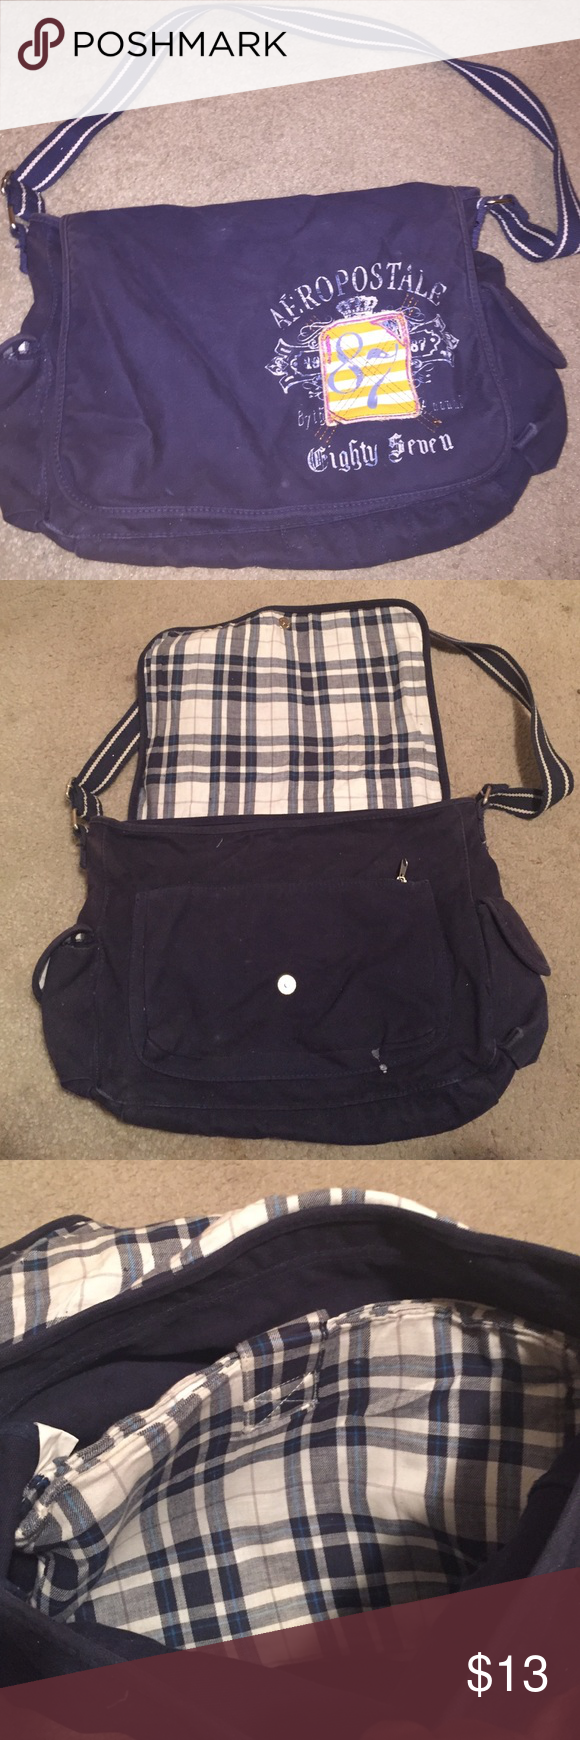 Aeropostale laptop bag Navy blue Aeropostale laptop bag. Still looks good inside and out. Plaid laptop case come inside of bag . The bag is a cotton/linen material which means it can attract dust just get a lent brush or thrown in washer will look good as new. Really sturdy with long adjustable strap to wear as crossbody/satchel/on shoulder. Blue & white plaid detail inside of bag. Only thing is the snap closure doesn't snap but that's an easy fix. Or just flap it over like I did nothing…